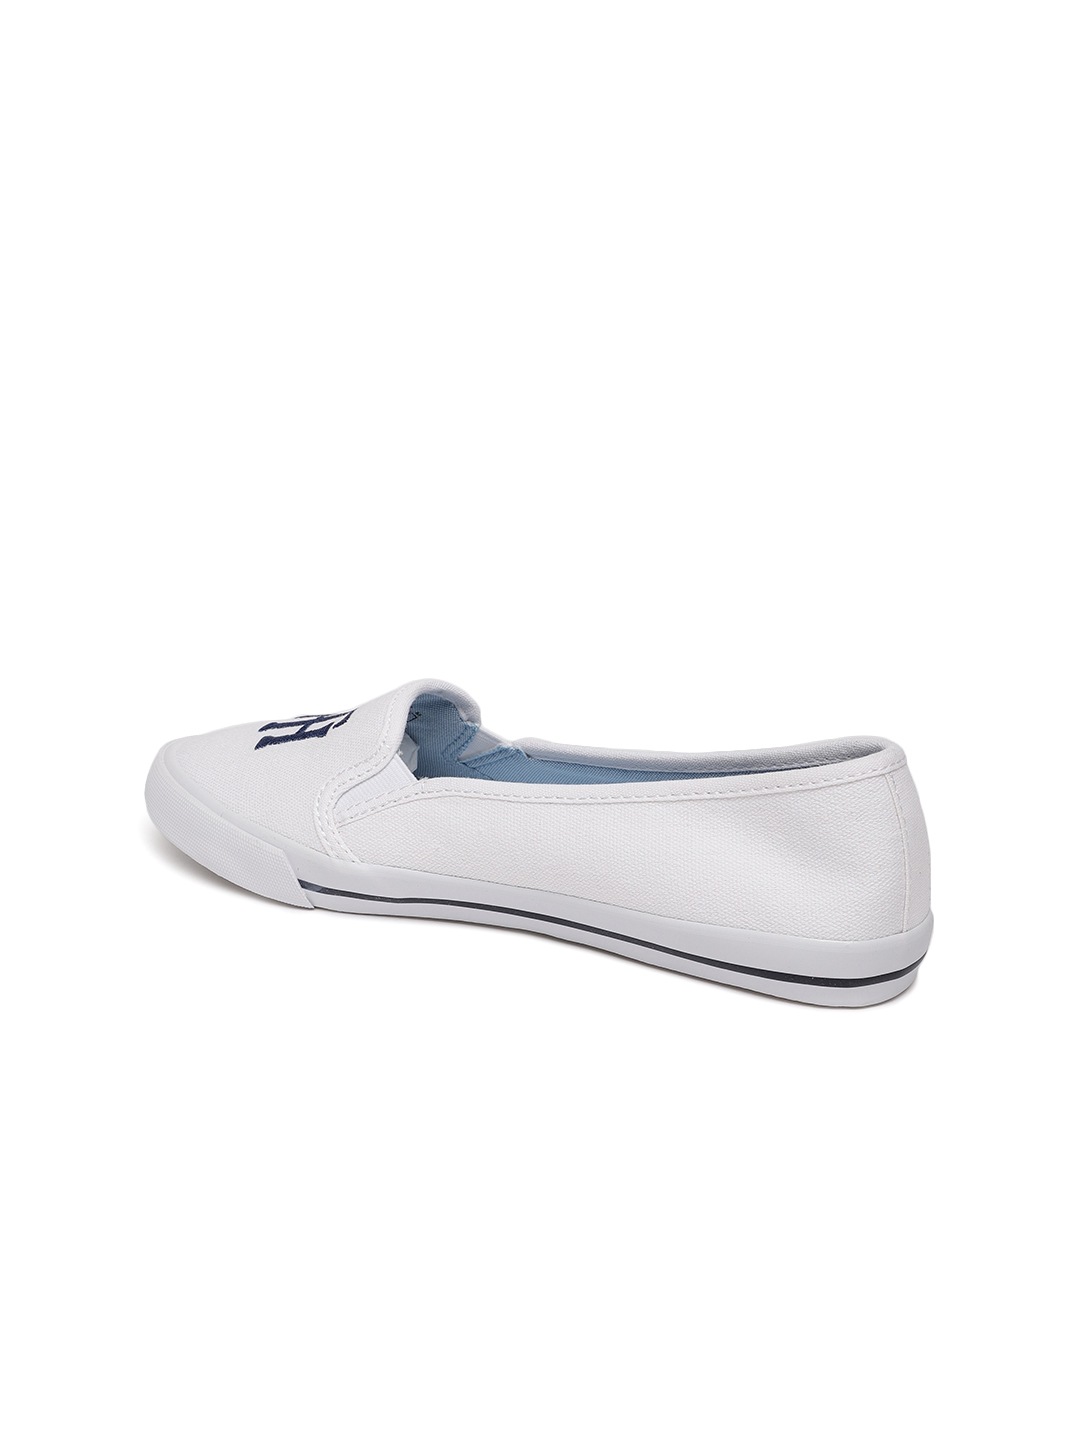 dcc8aed77 Buy Tommy Hilfiger Women White Printed Sneakers - Casual Shoes for ...